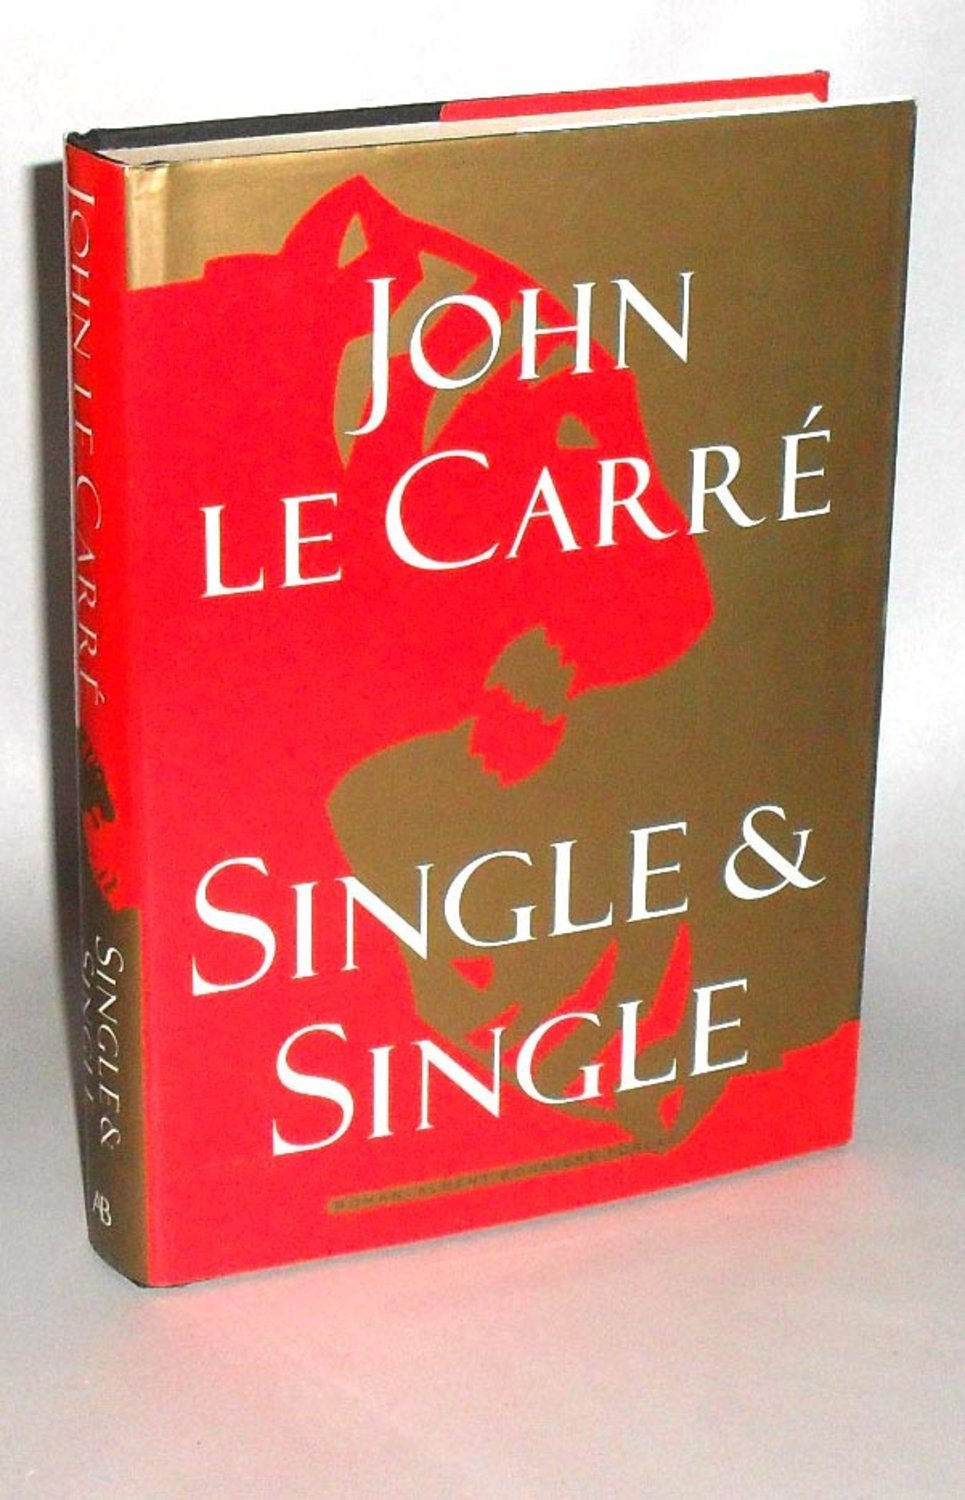 John le Carré : Single & Single